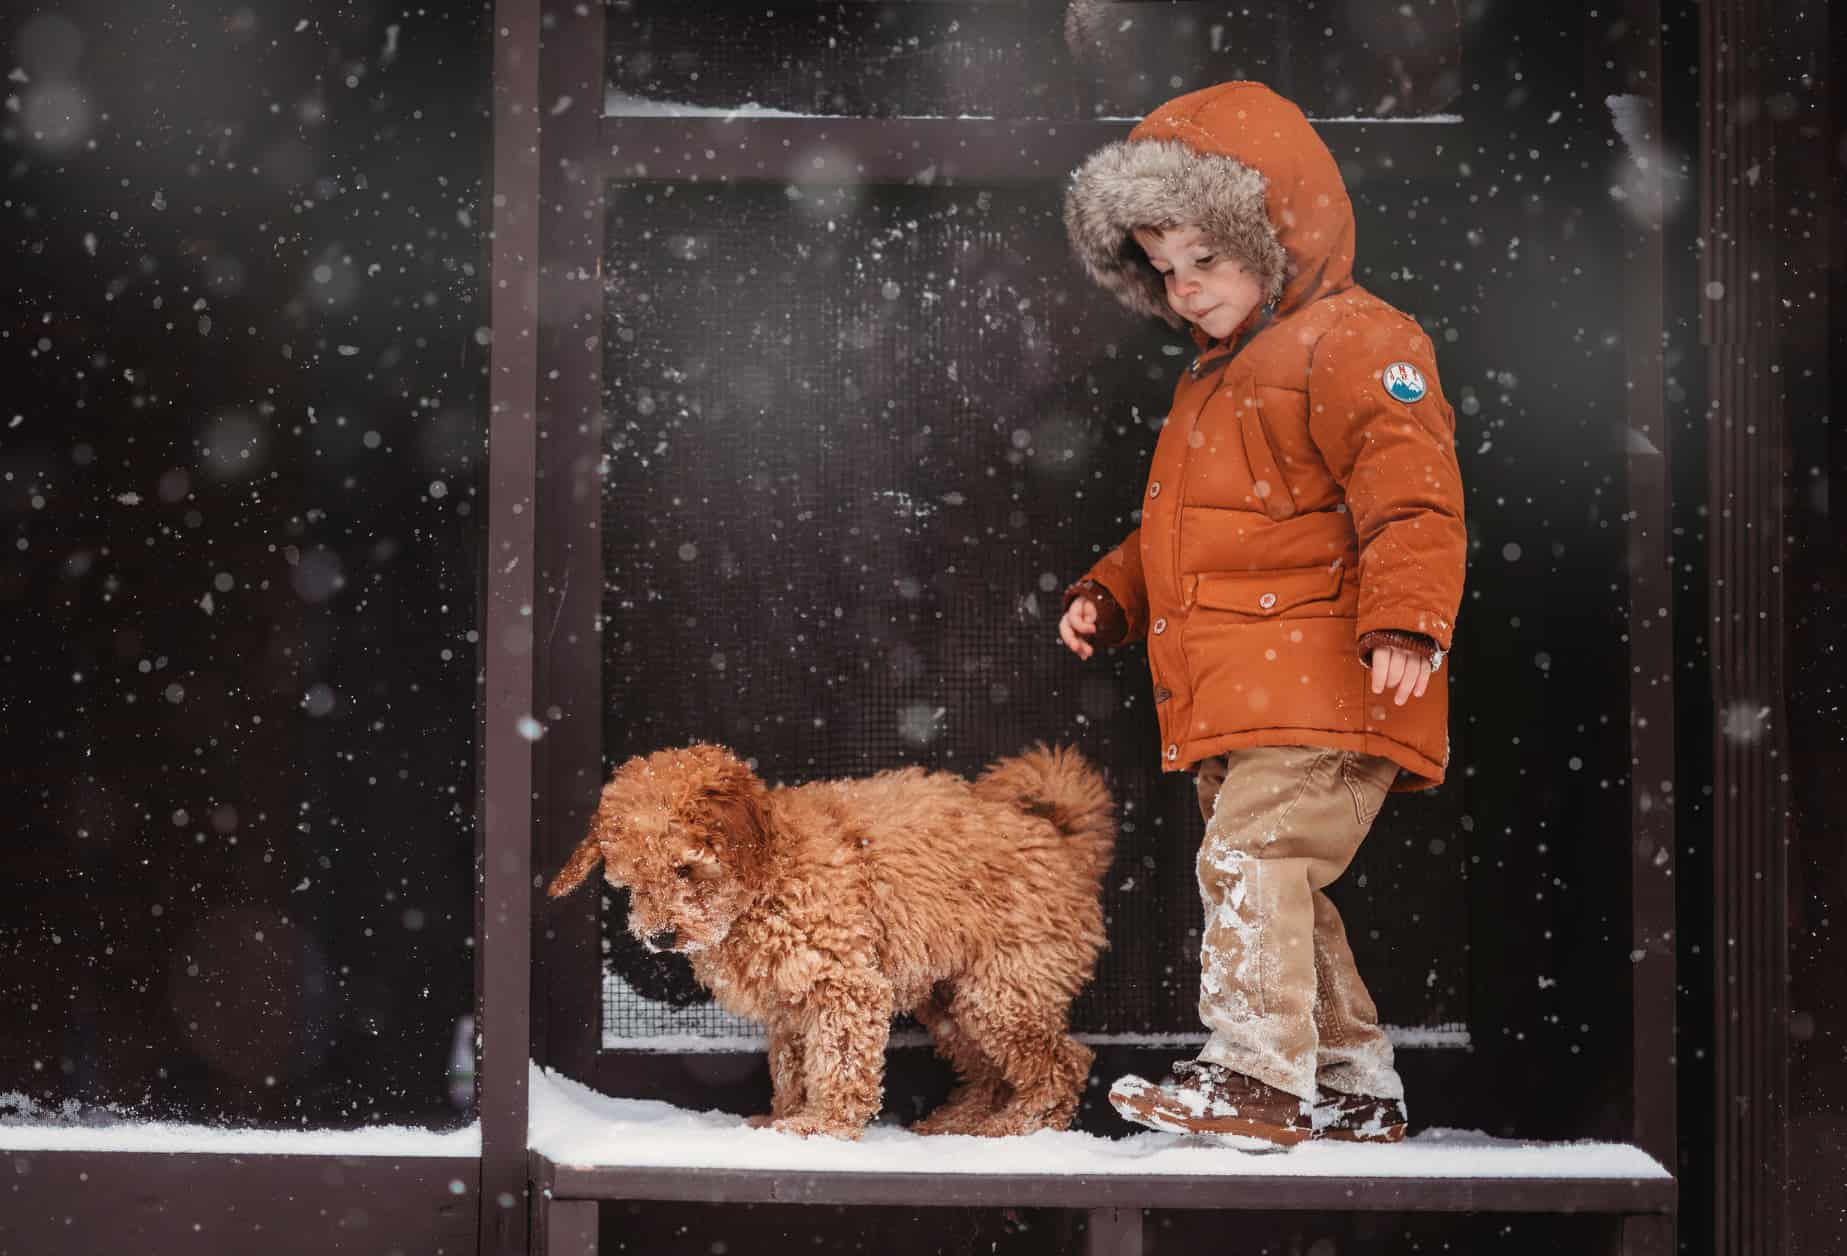 Amazing Snow Photos That Show The Magic Of Winter Season